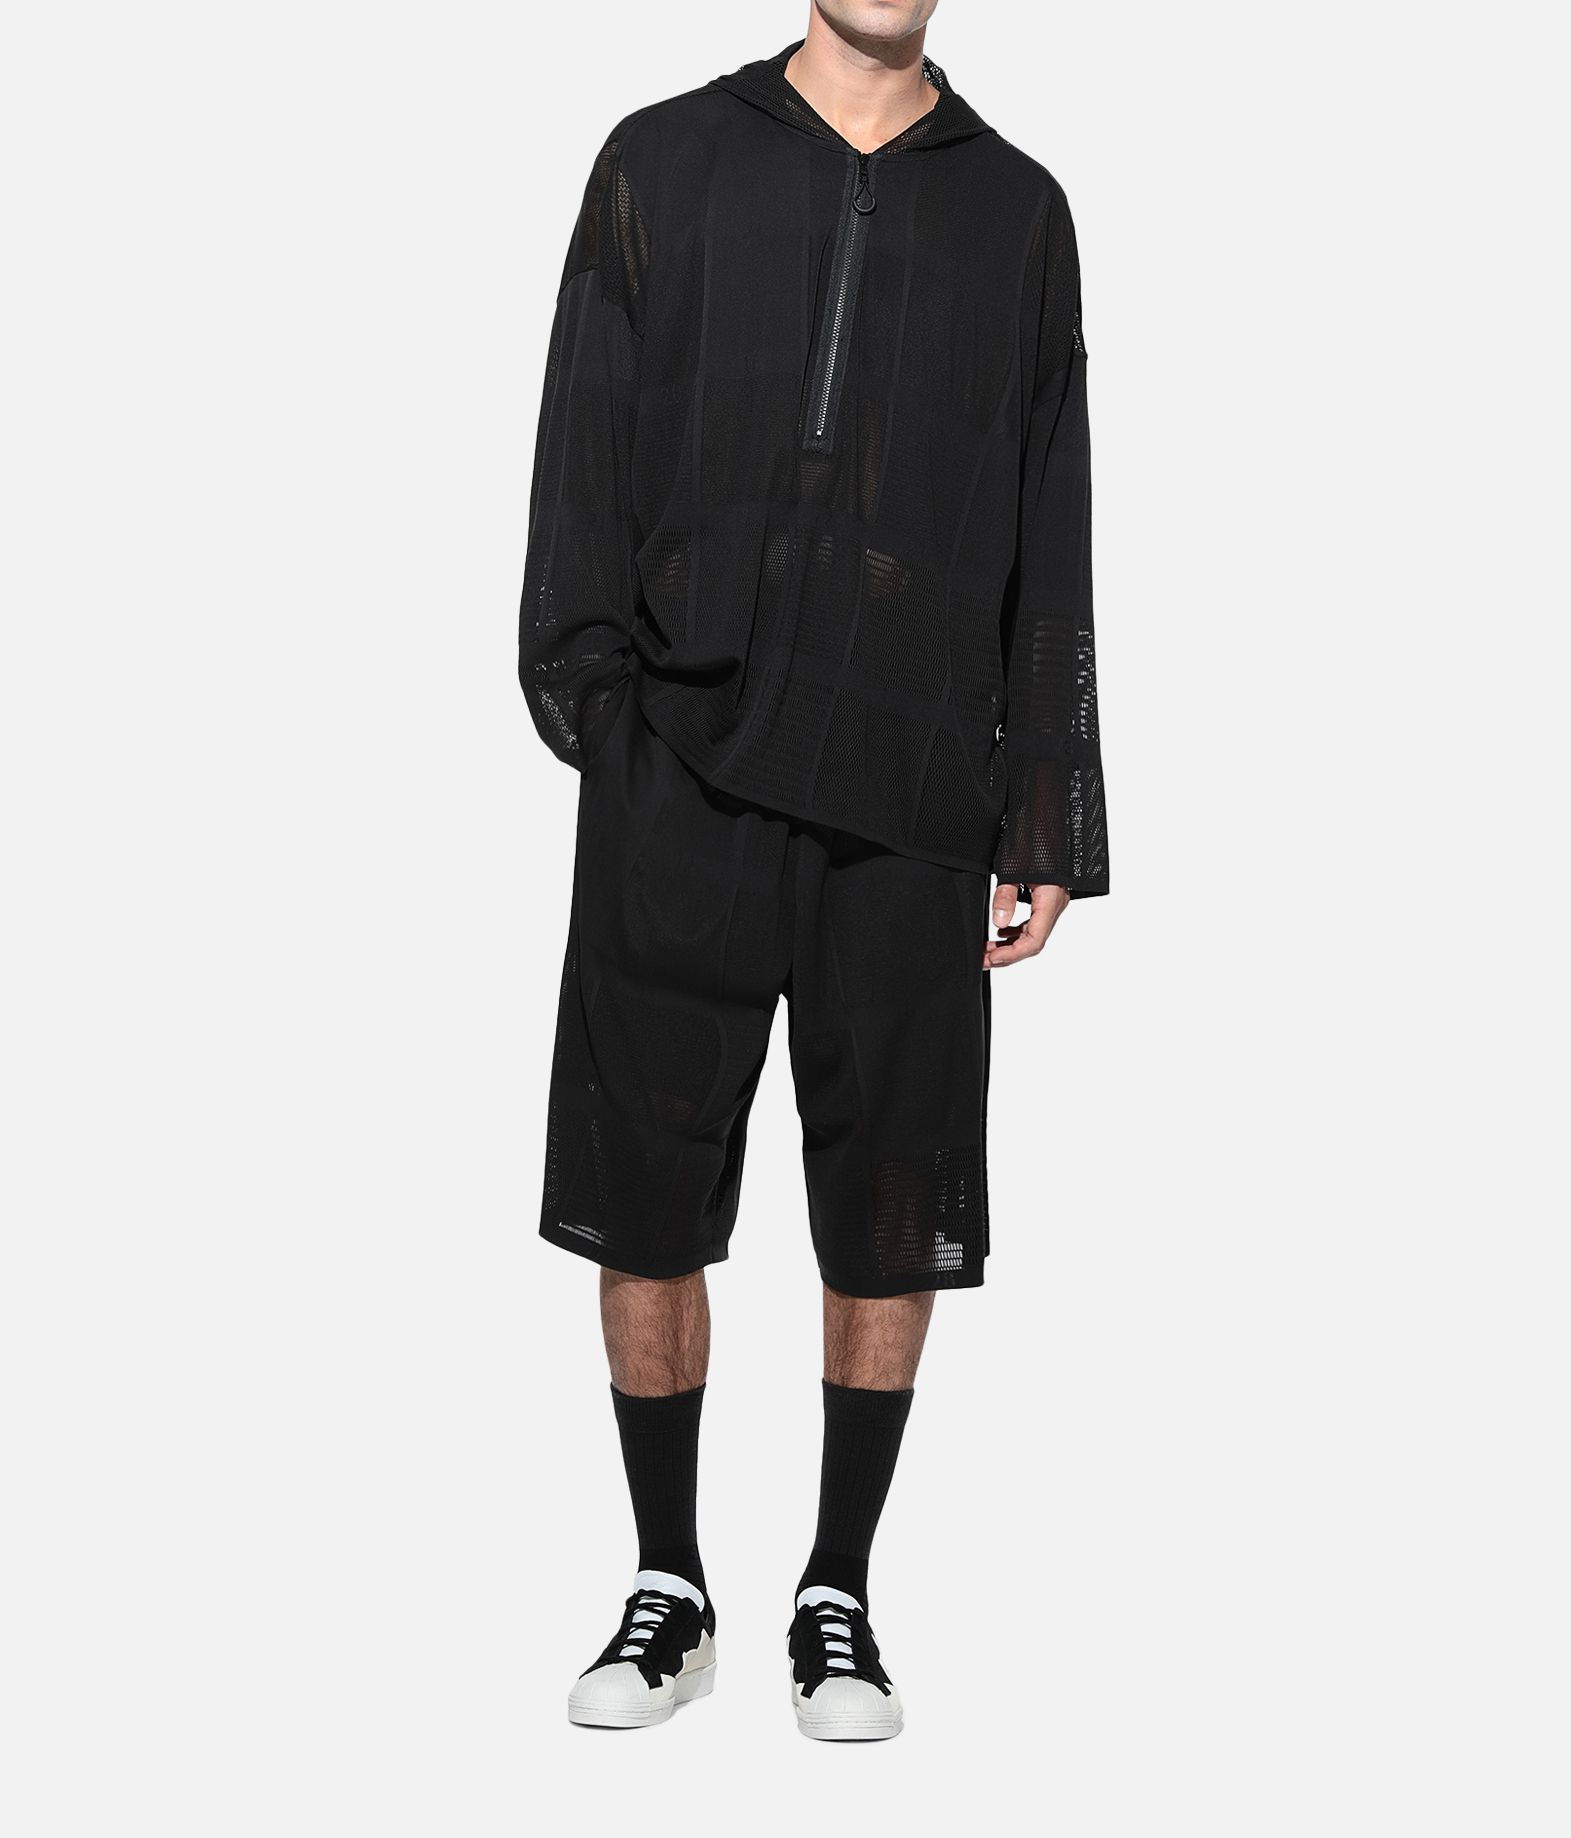 Y-3 Y-3 Patchwork Shorts Shorts Man a